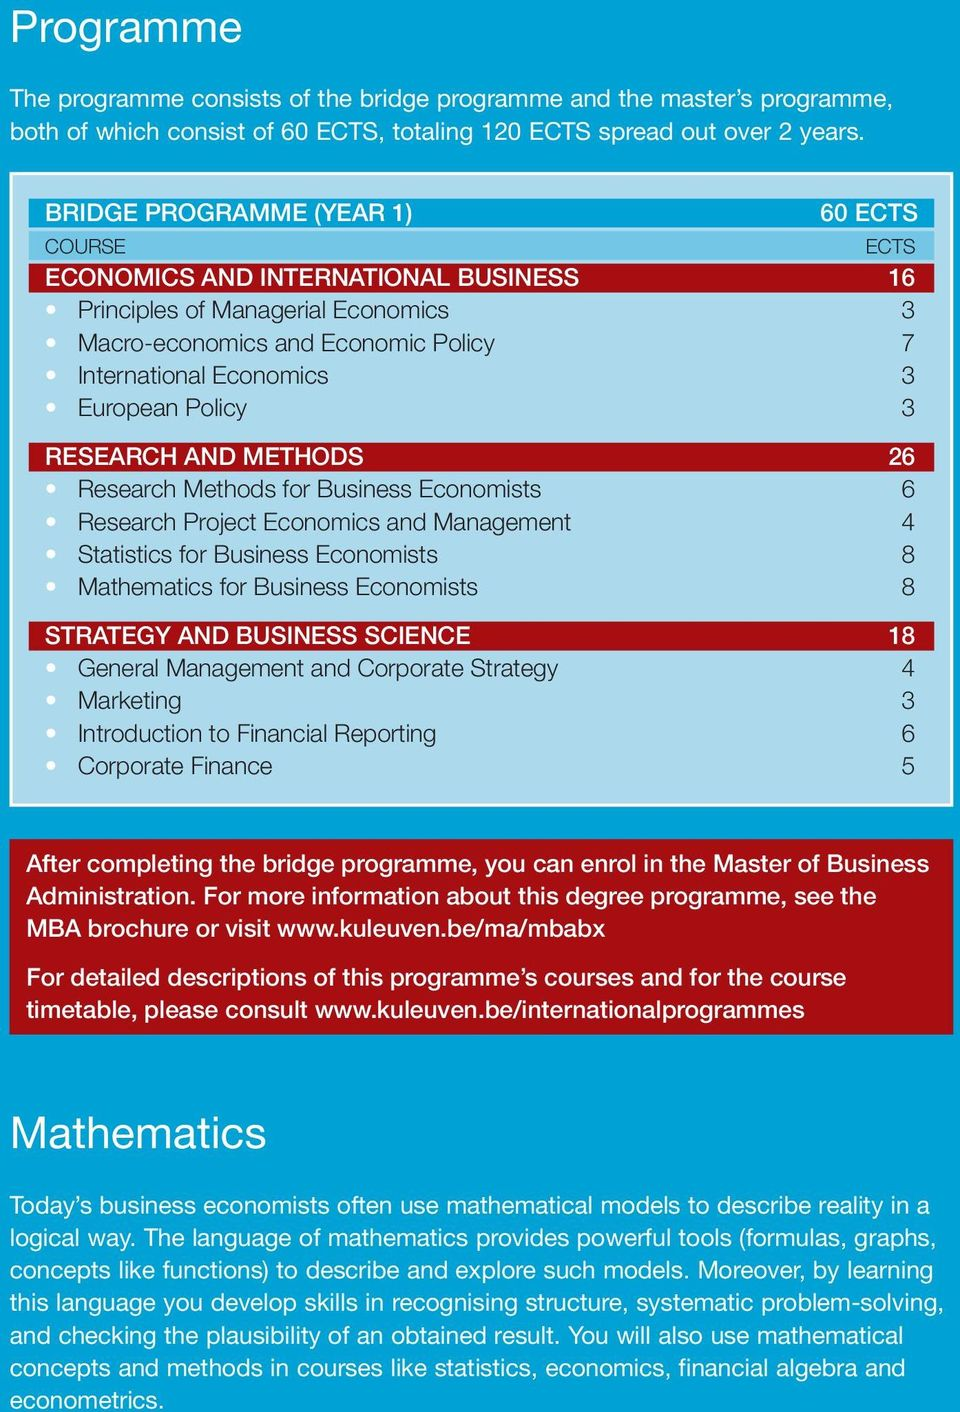 Policy 3 RESEARCH AND METHODS 26 Research Methods for Business Economists 6 Research Project Economics and Management 4 Statistics for Business Economists 8 Mathematics for Business Economists 8